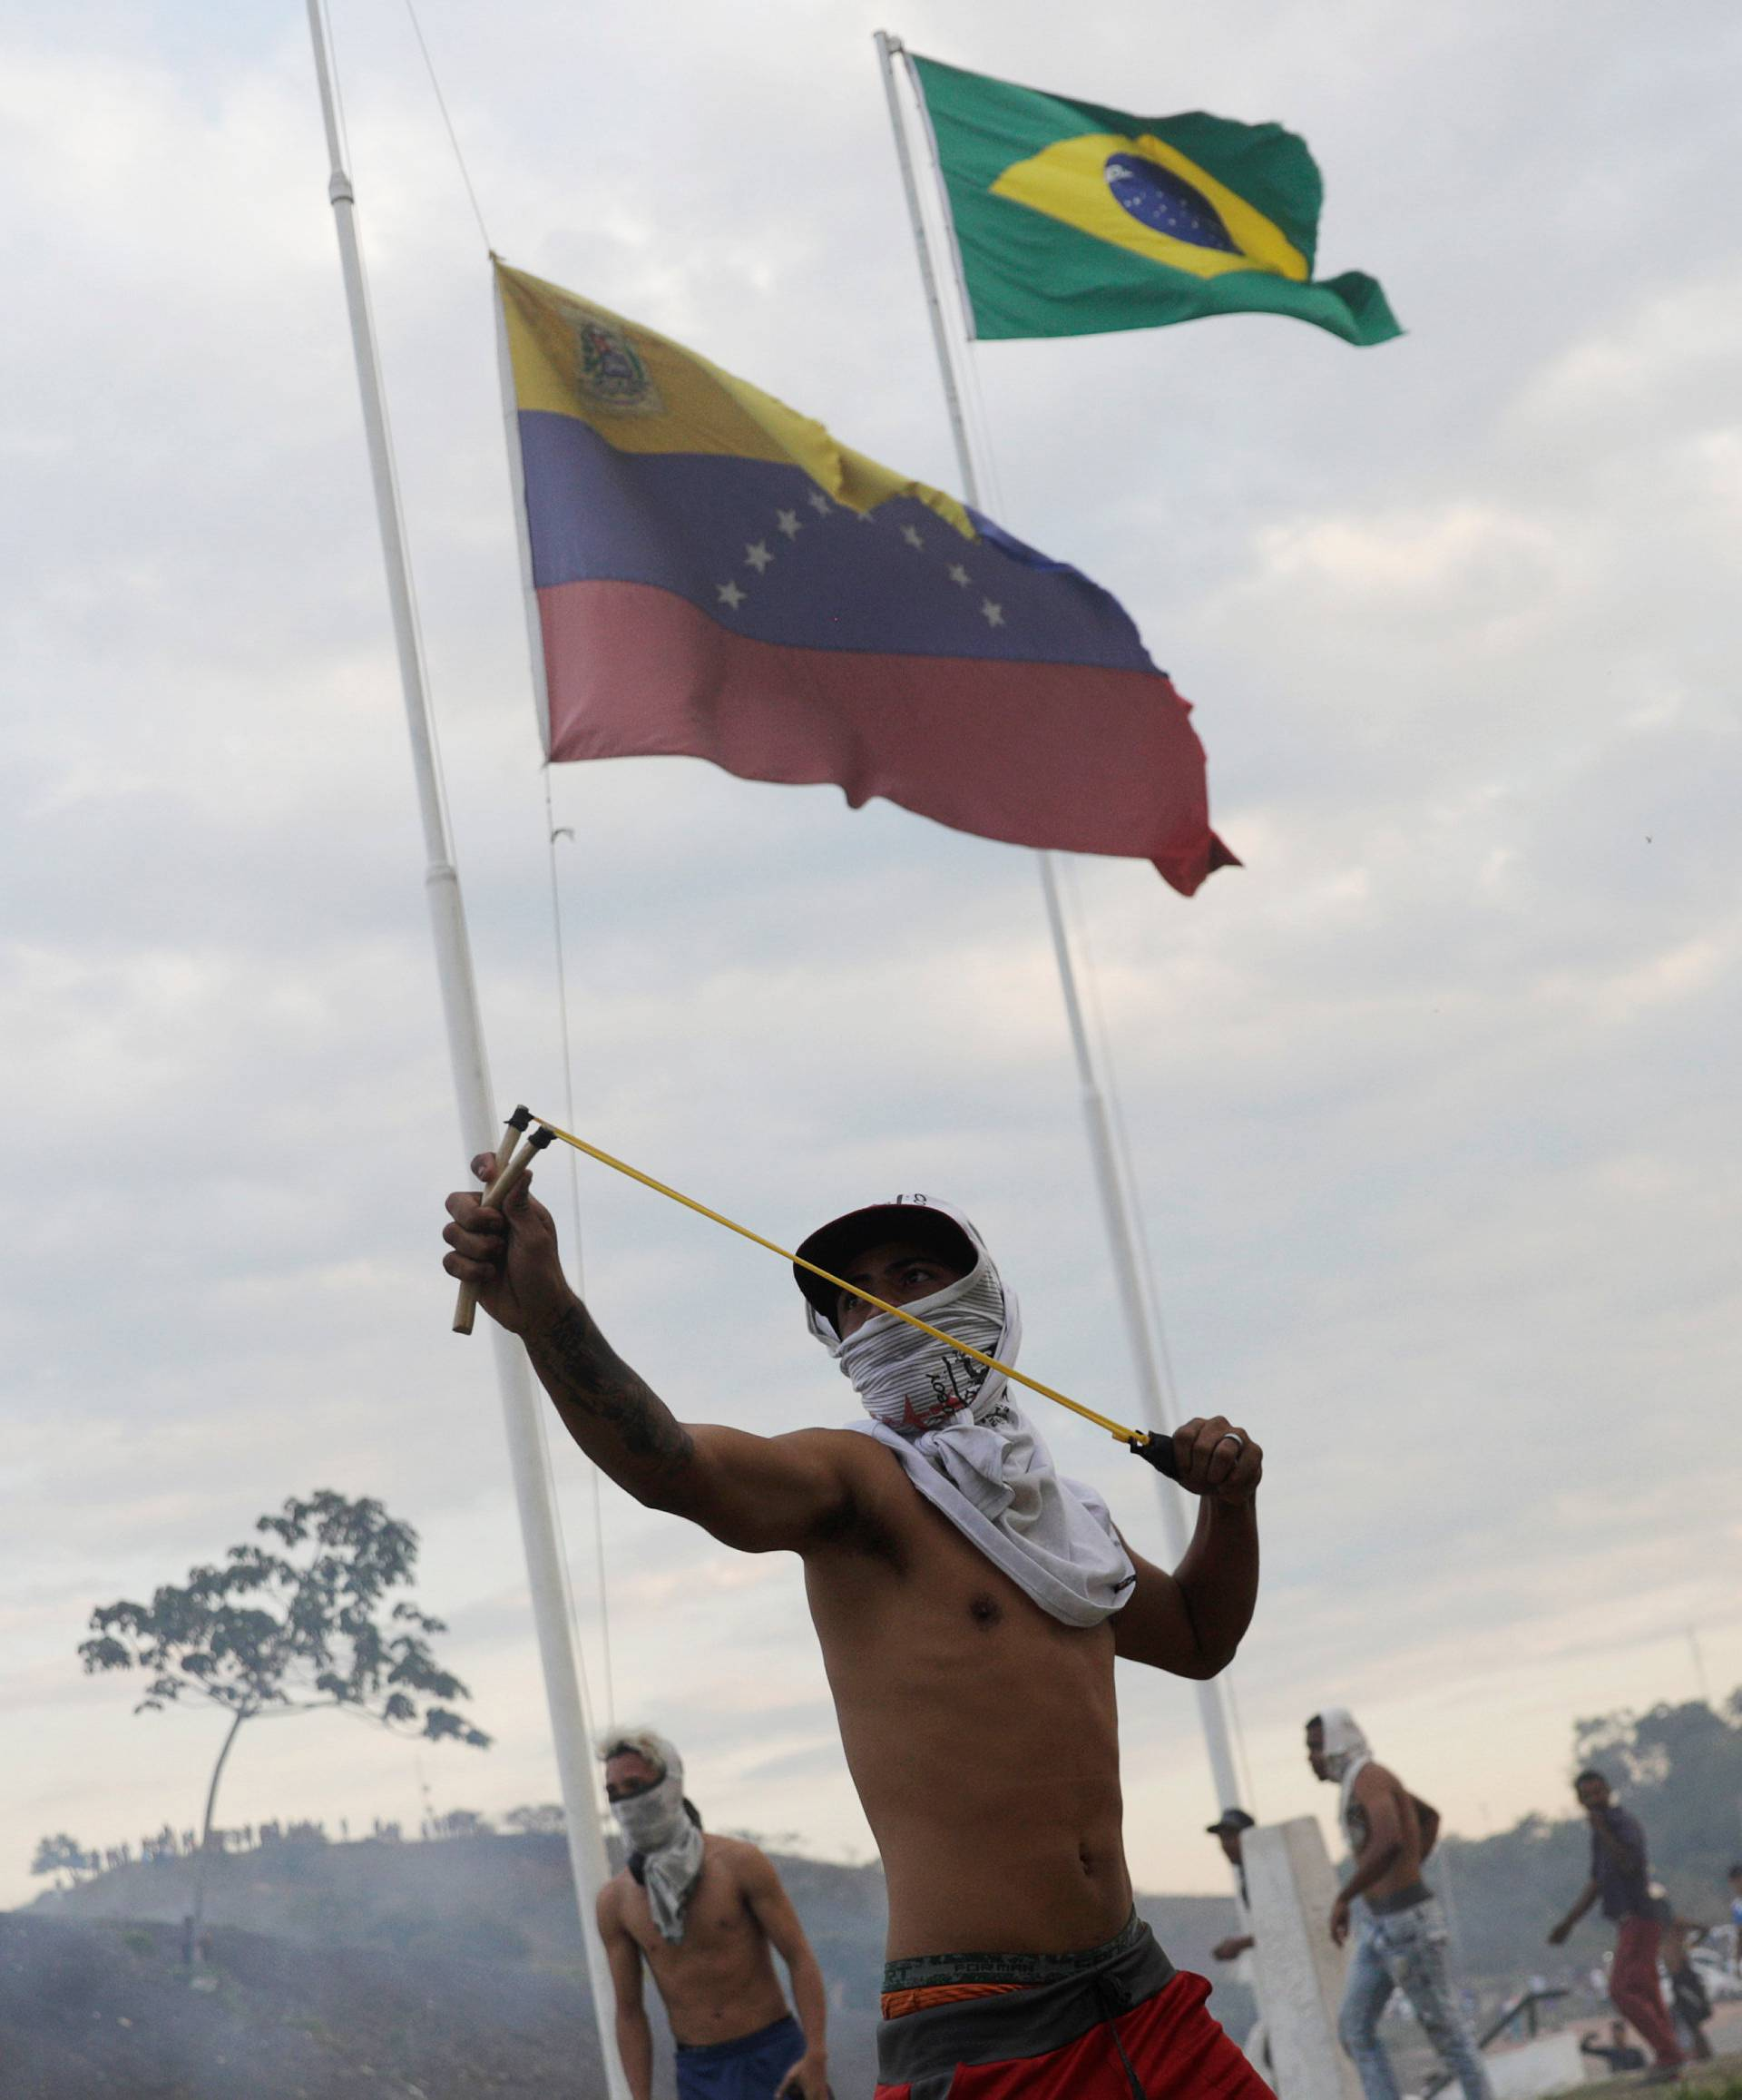 A protester uses a slingshot during clashes with Venezuelan soldiers along the border between Venezuela and Brazil in Pacaraima